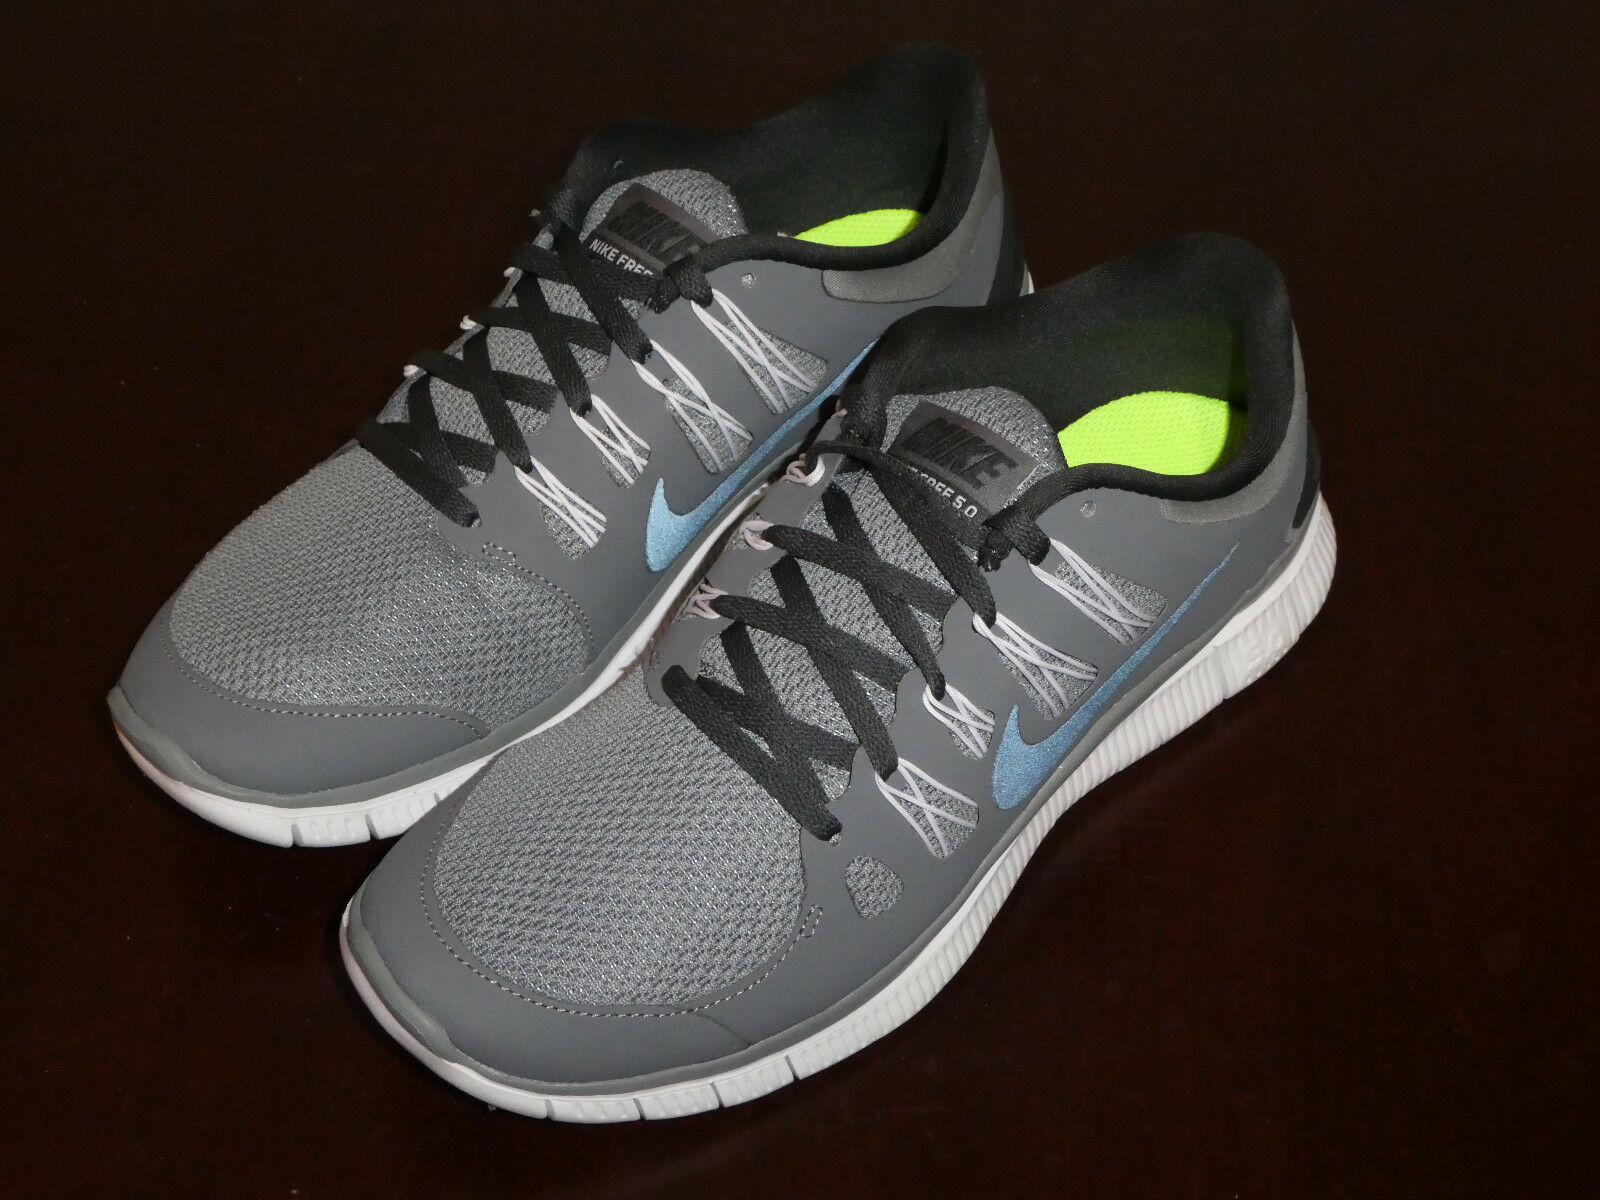 Nike Free 5.0 mens shoes new 579959 001 cool grey sneakes